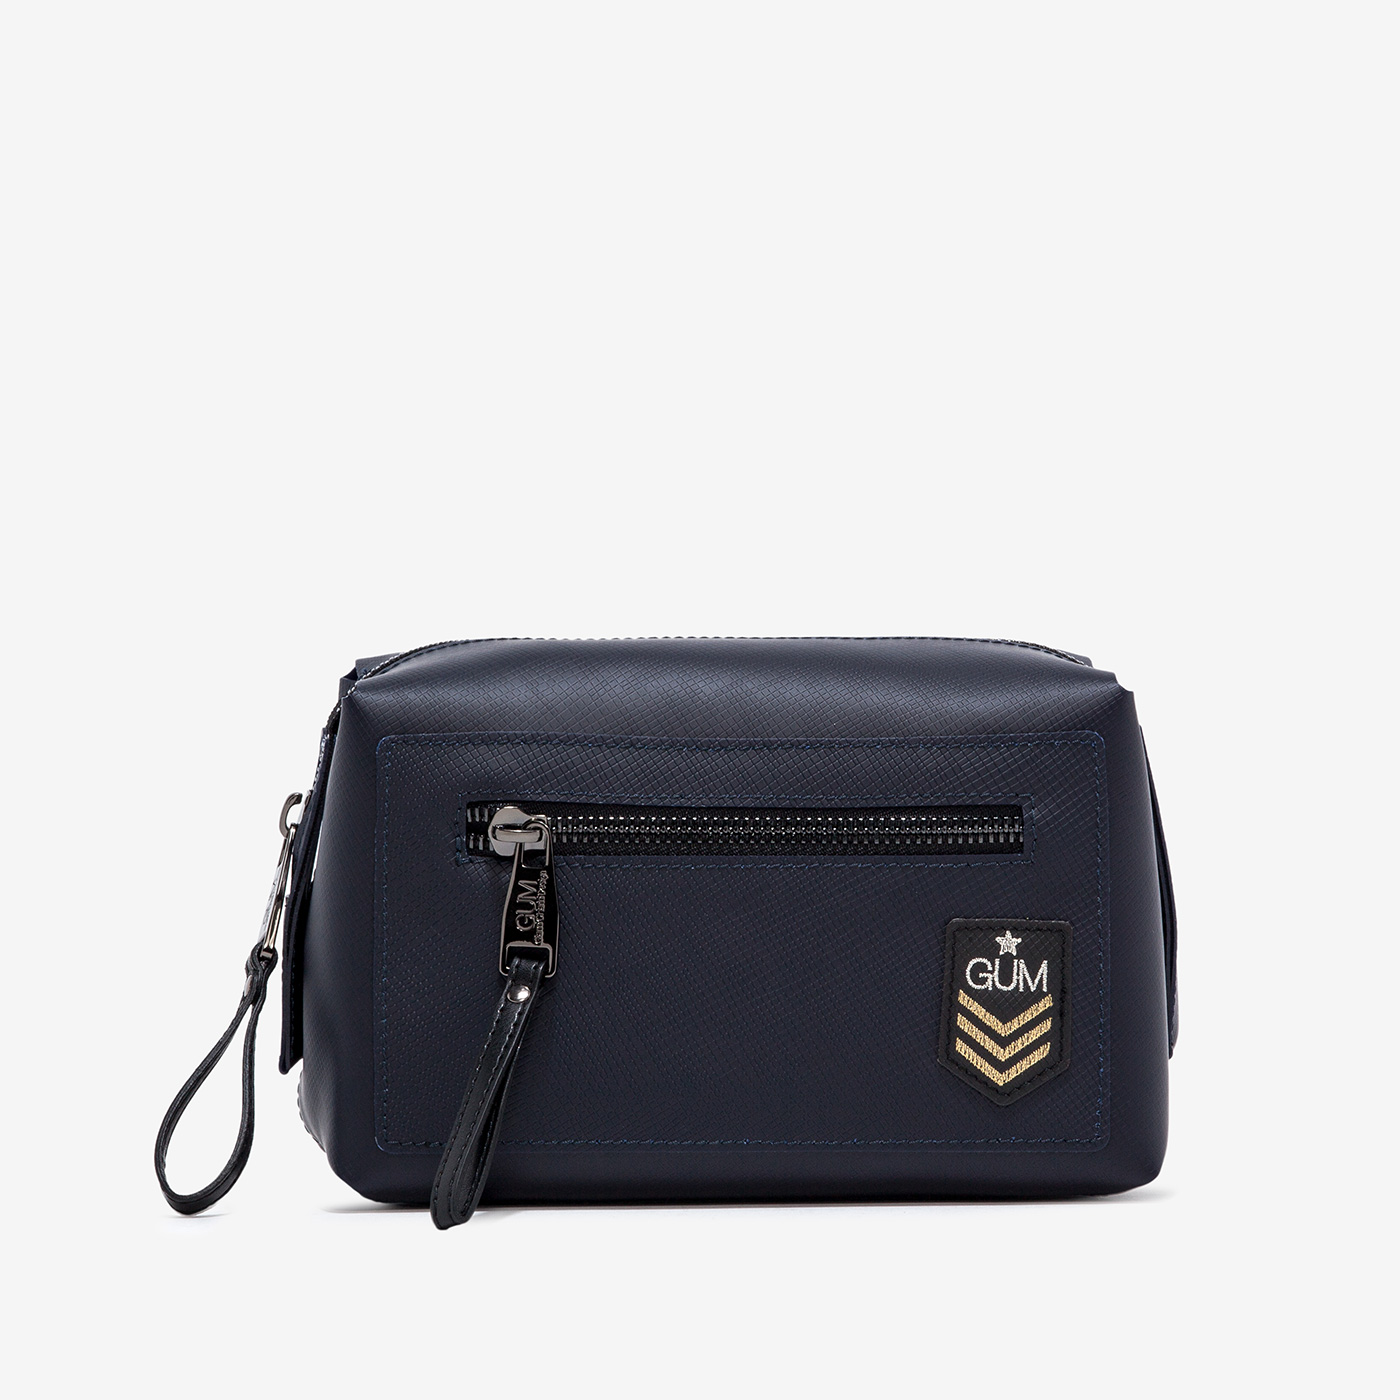 GUM: MILITARY PATTERN BEAUTY CASE